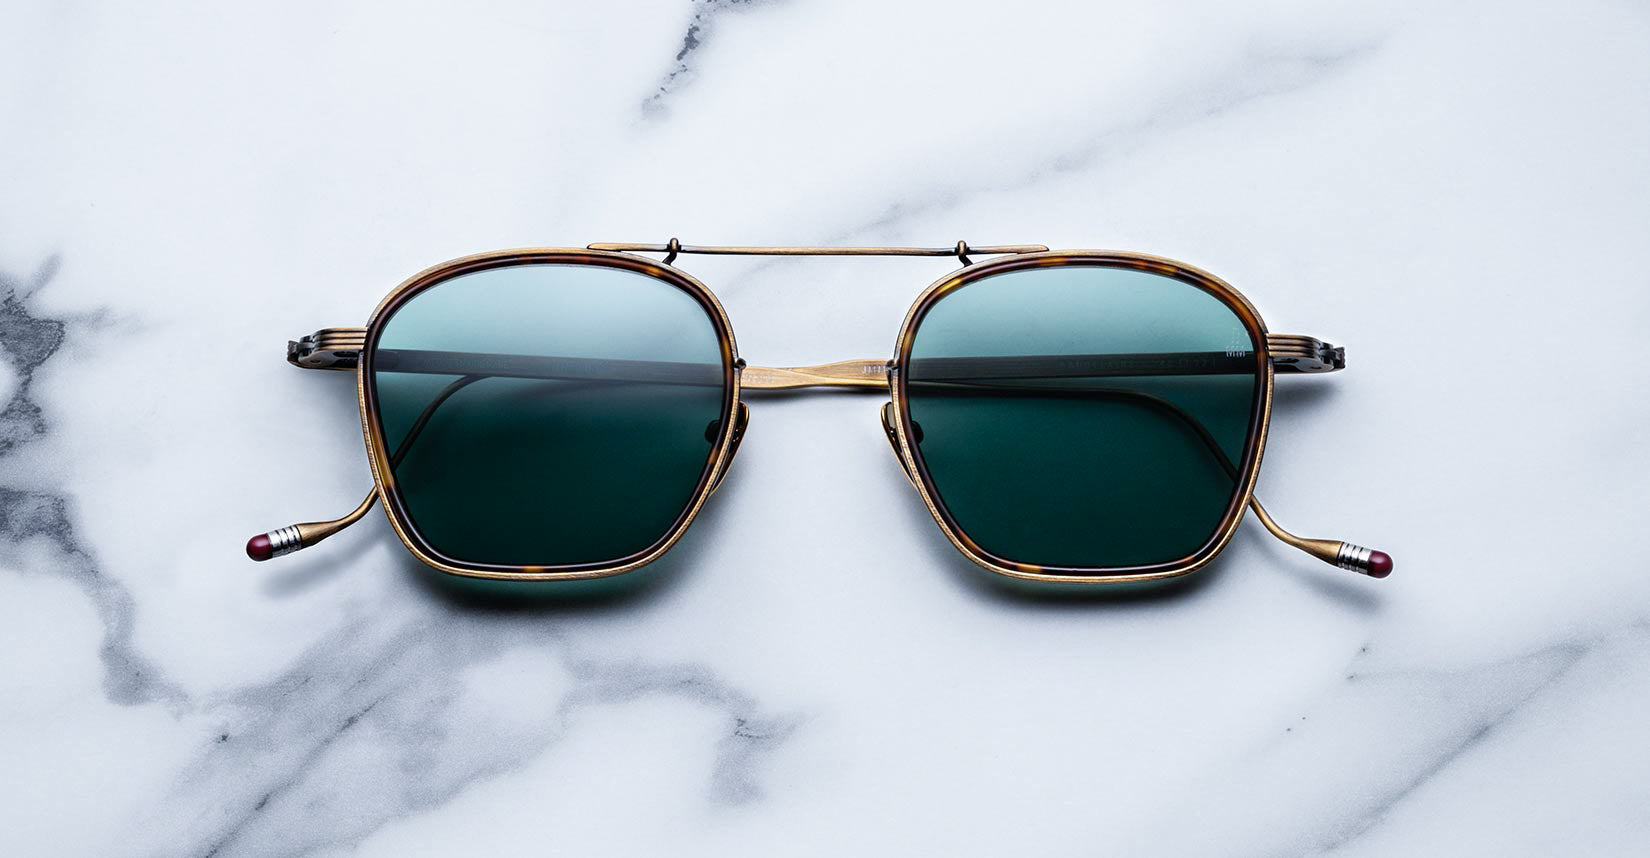 Jacques Marie Mage Baudelaire GoldAntique Limited Edition Sunglasses